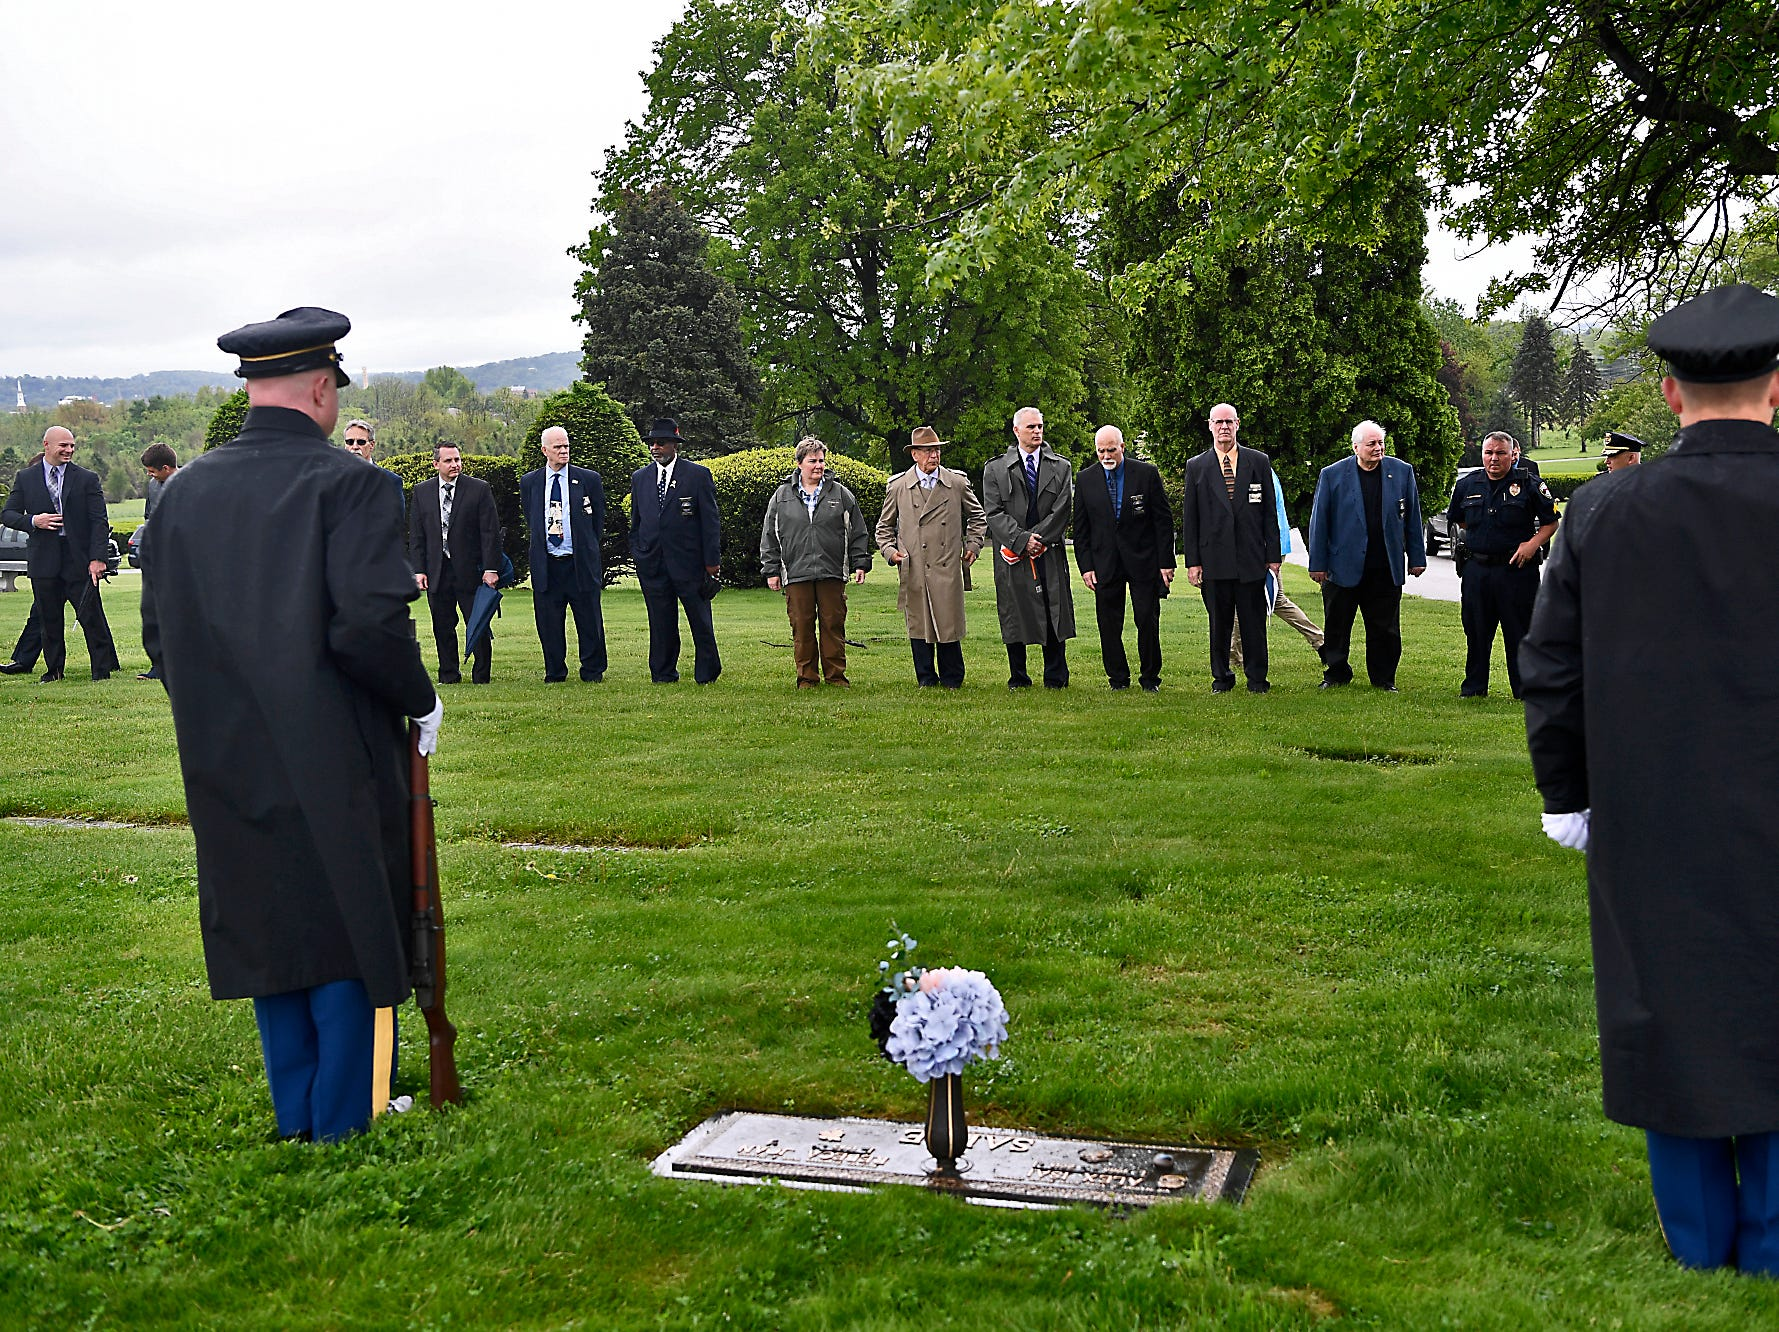 Honor Guard members stand beside the grave site of Officer Alex Sable as the Fraternal Order of Police (FOP) Lodge 15 hold their annual memorial service, Sunday, May 5, 2019, at Prospect Hill Cemetery.John A. Pavoncello photo